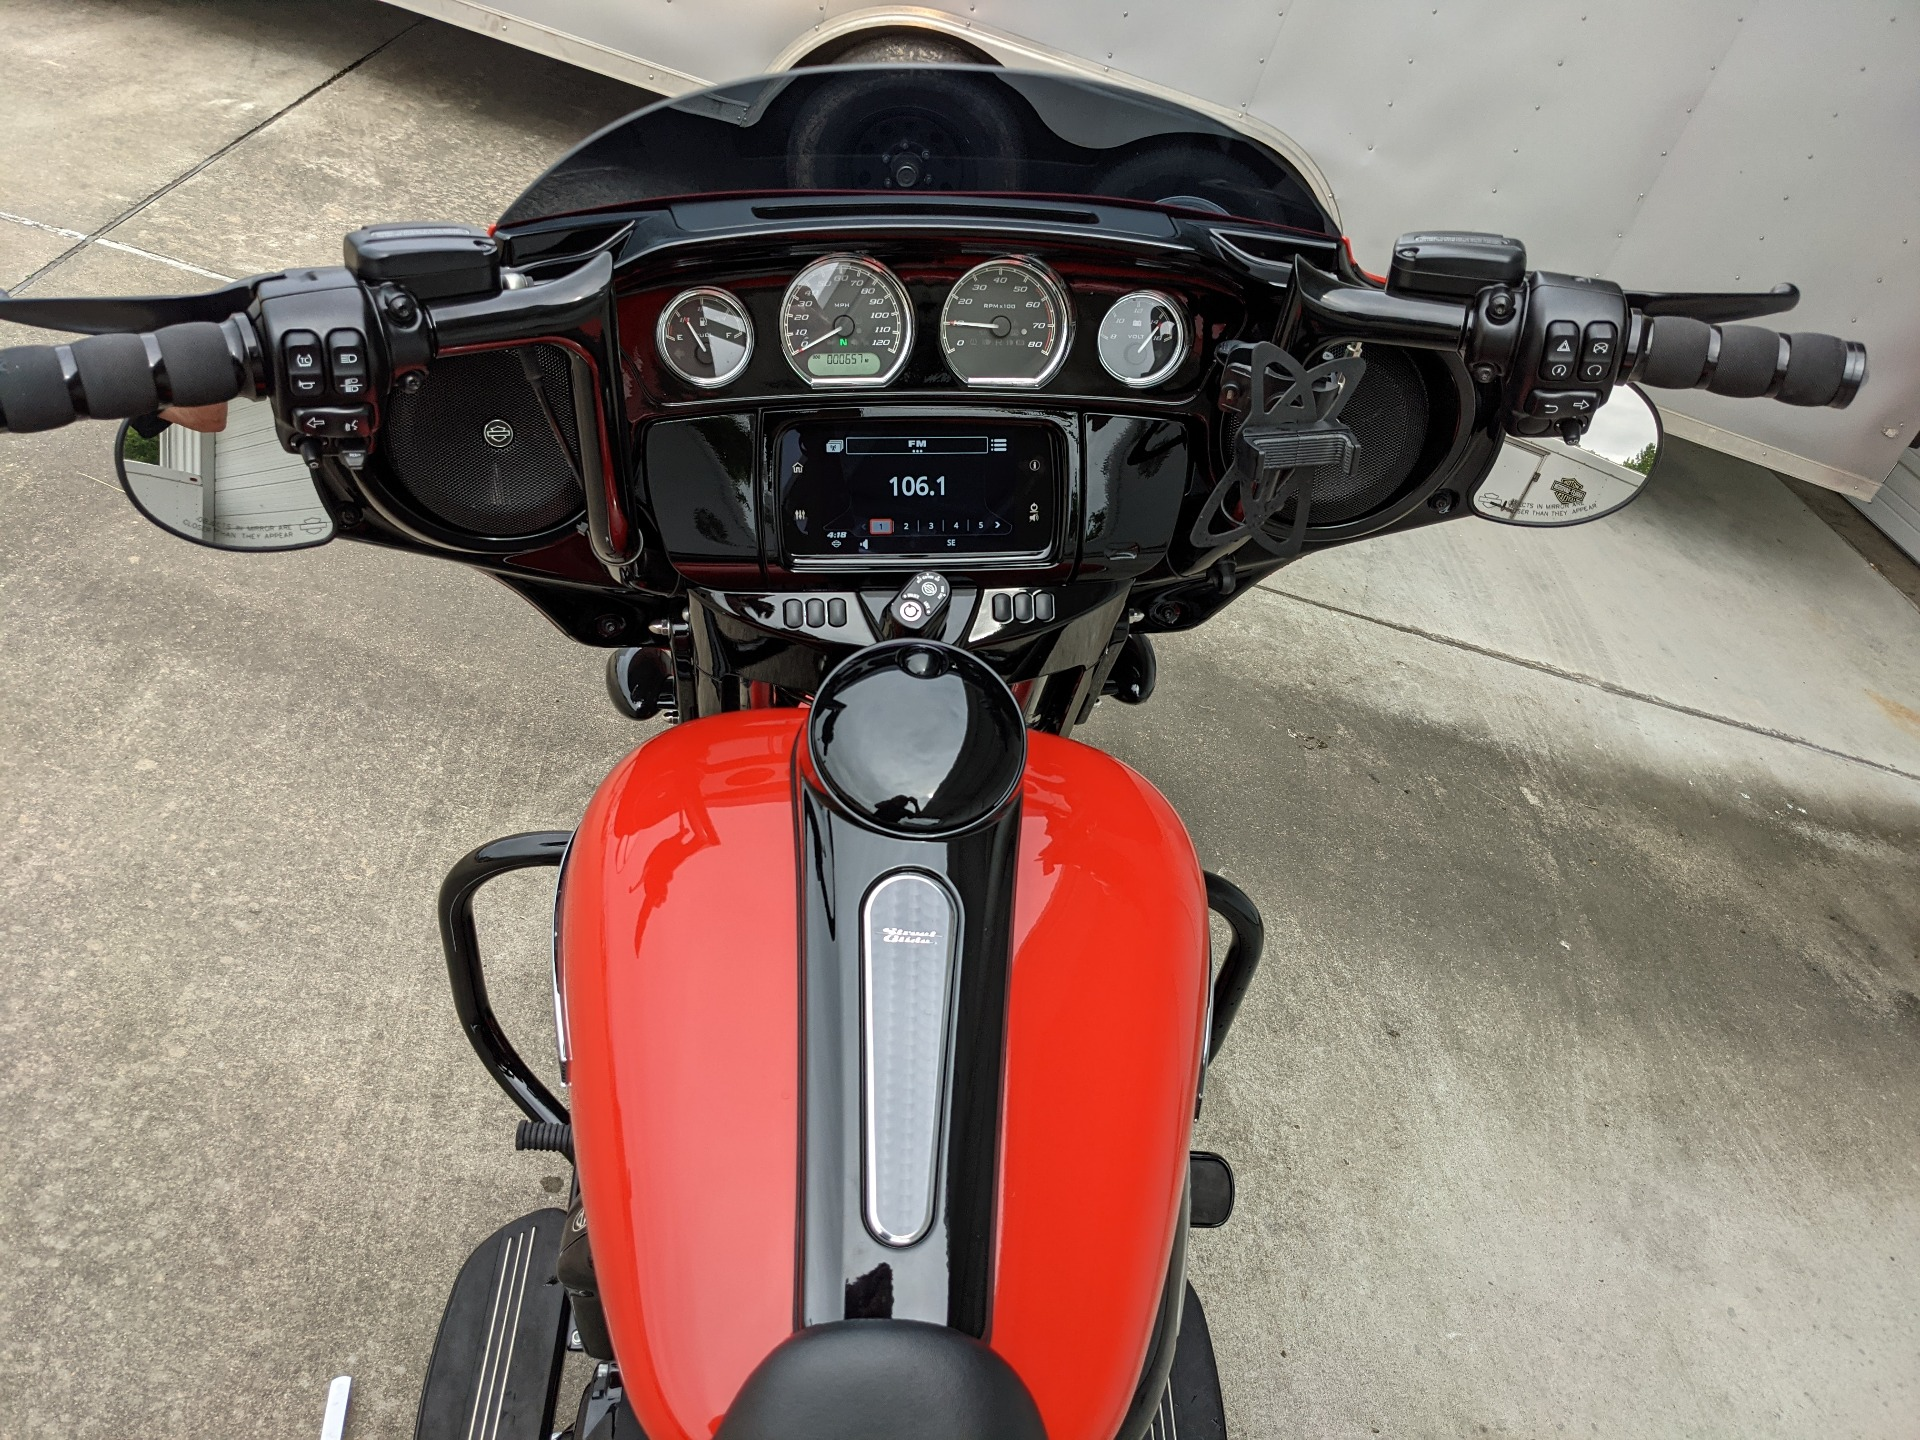 2020 Harley-Davidson Street Glide Special for sale low miles - Photo 11